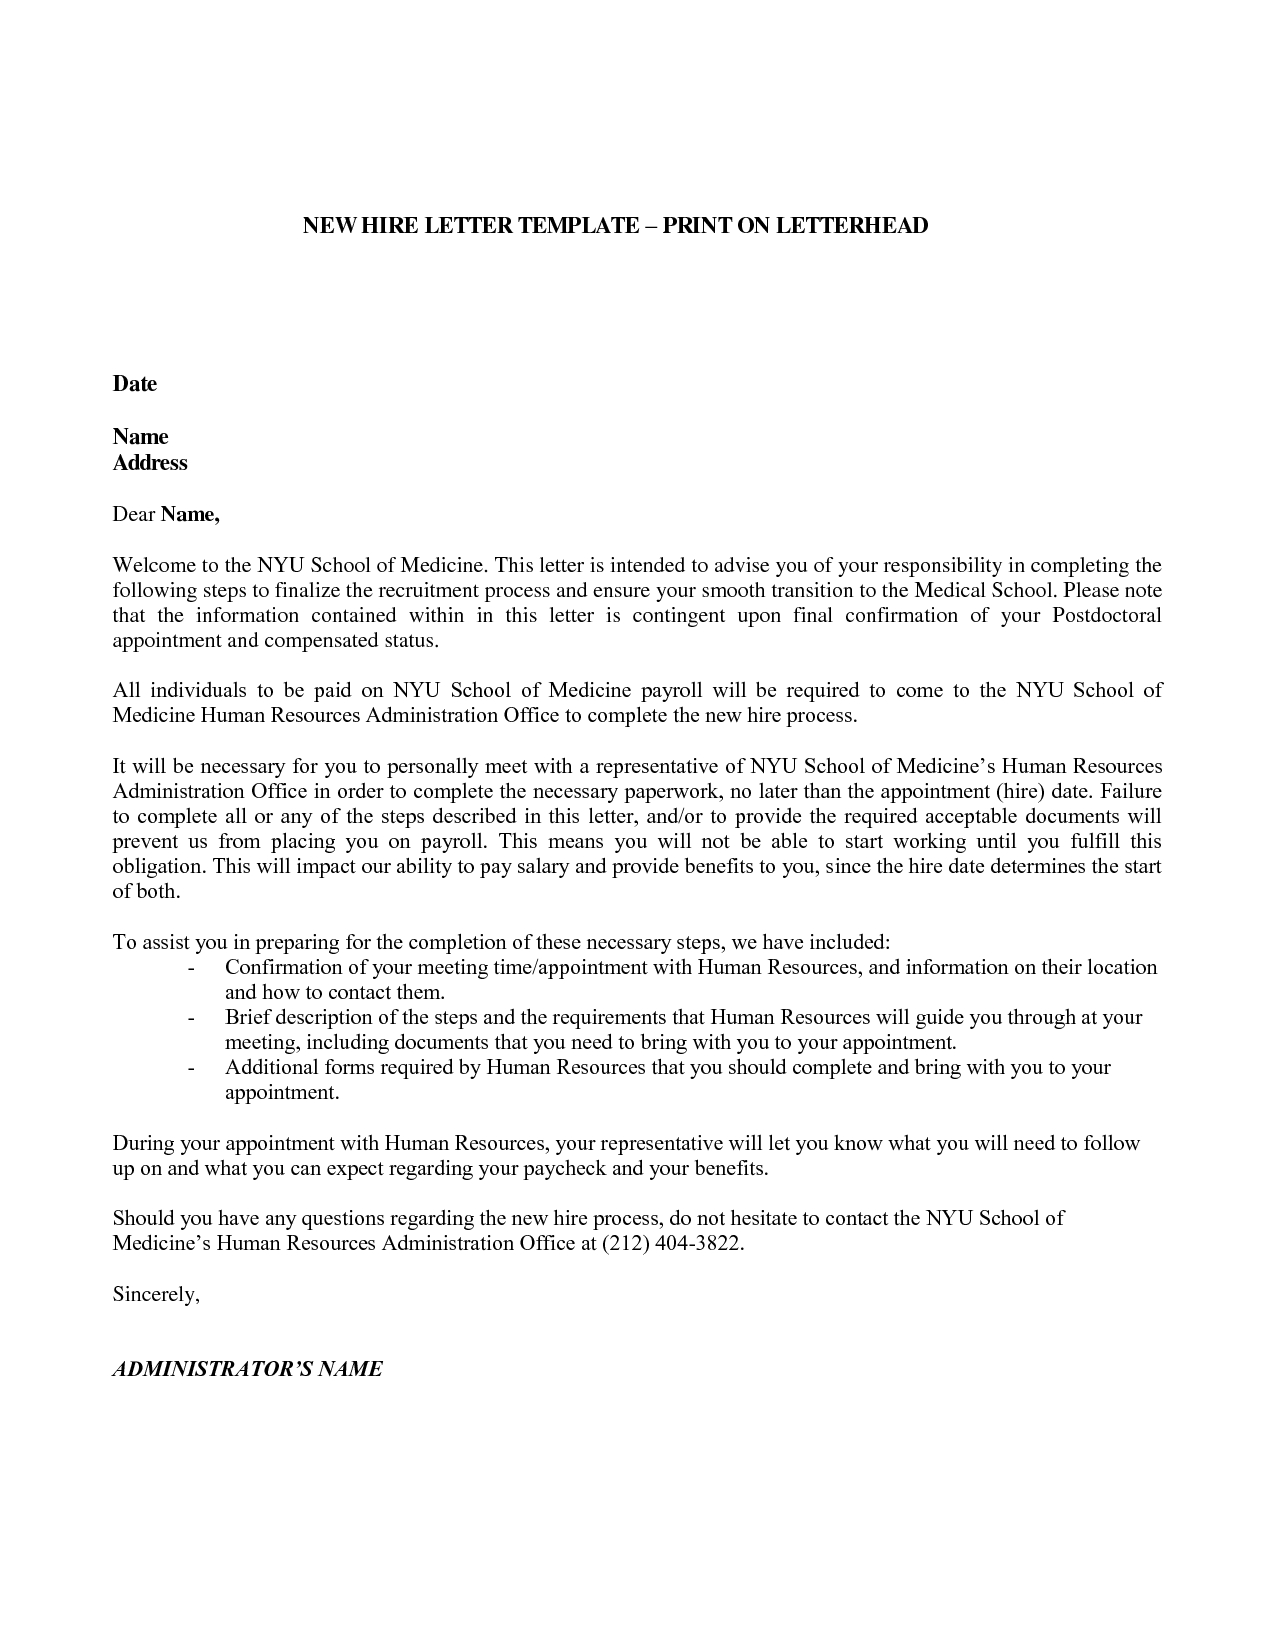 new hire welcome letter template